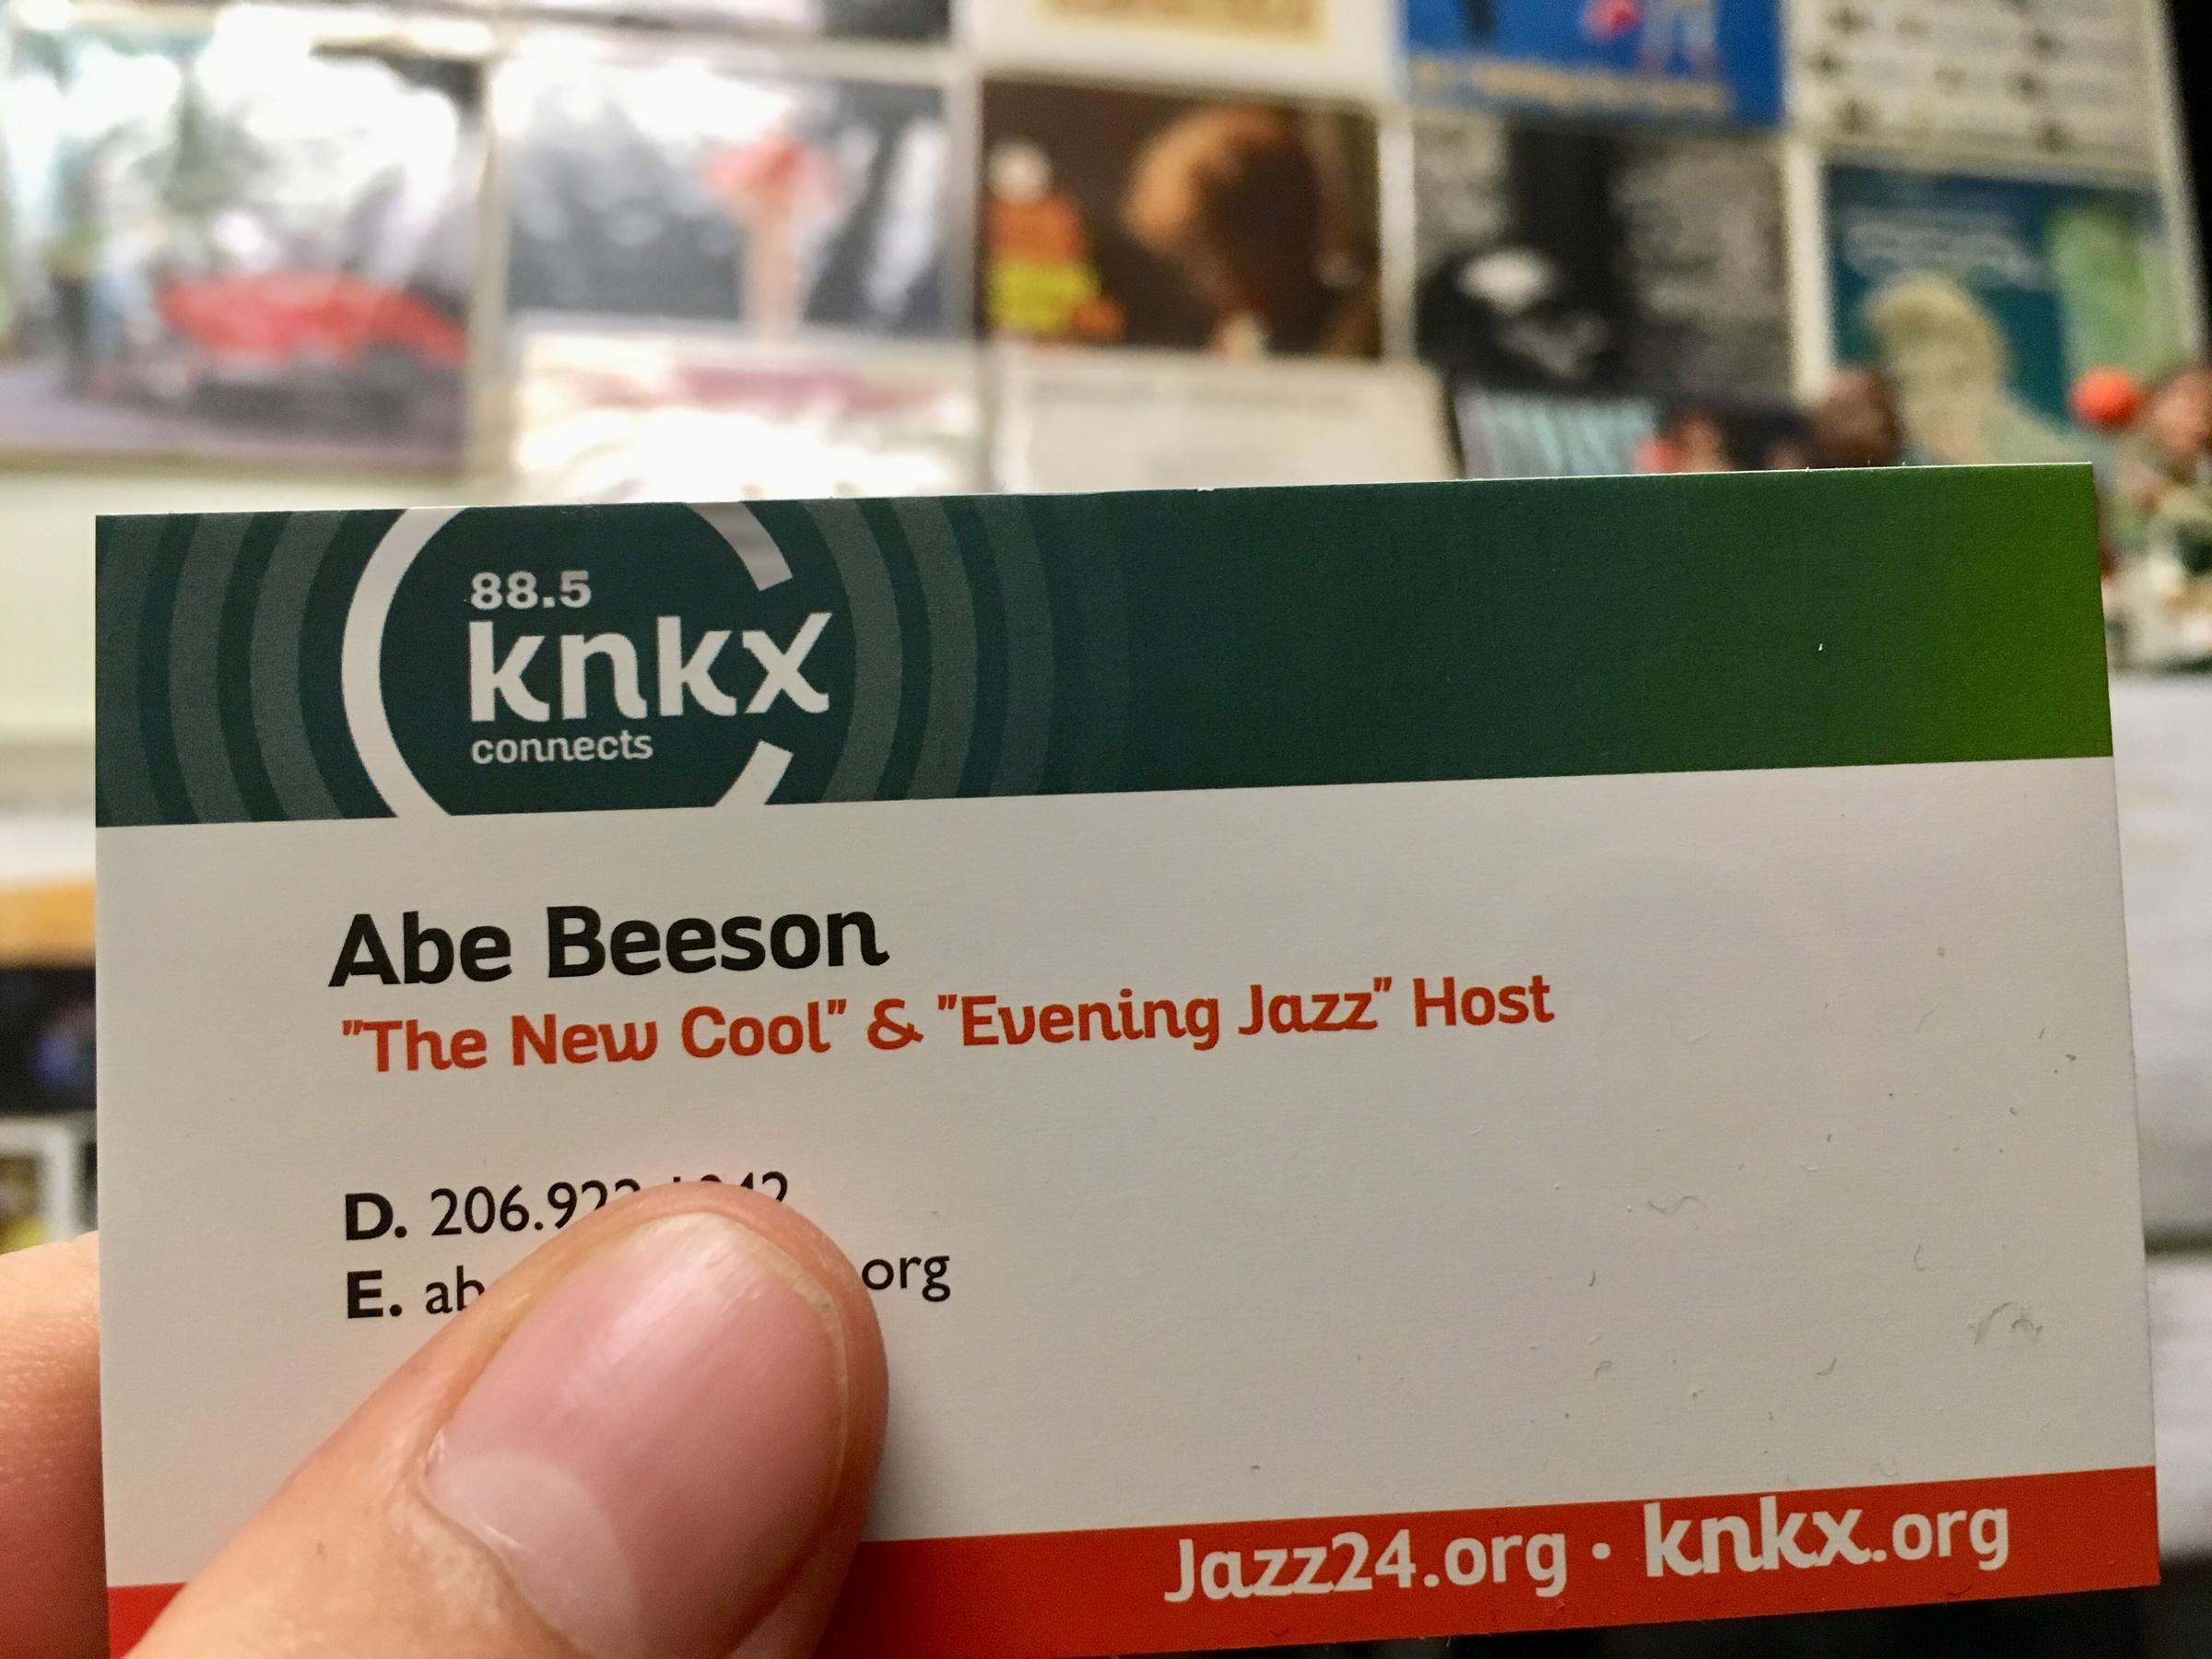 the new cool celebrating one year on knkx